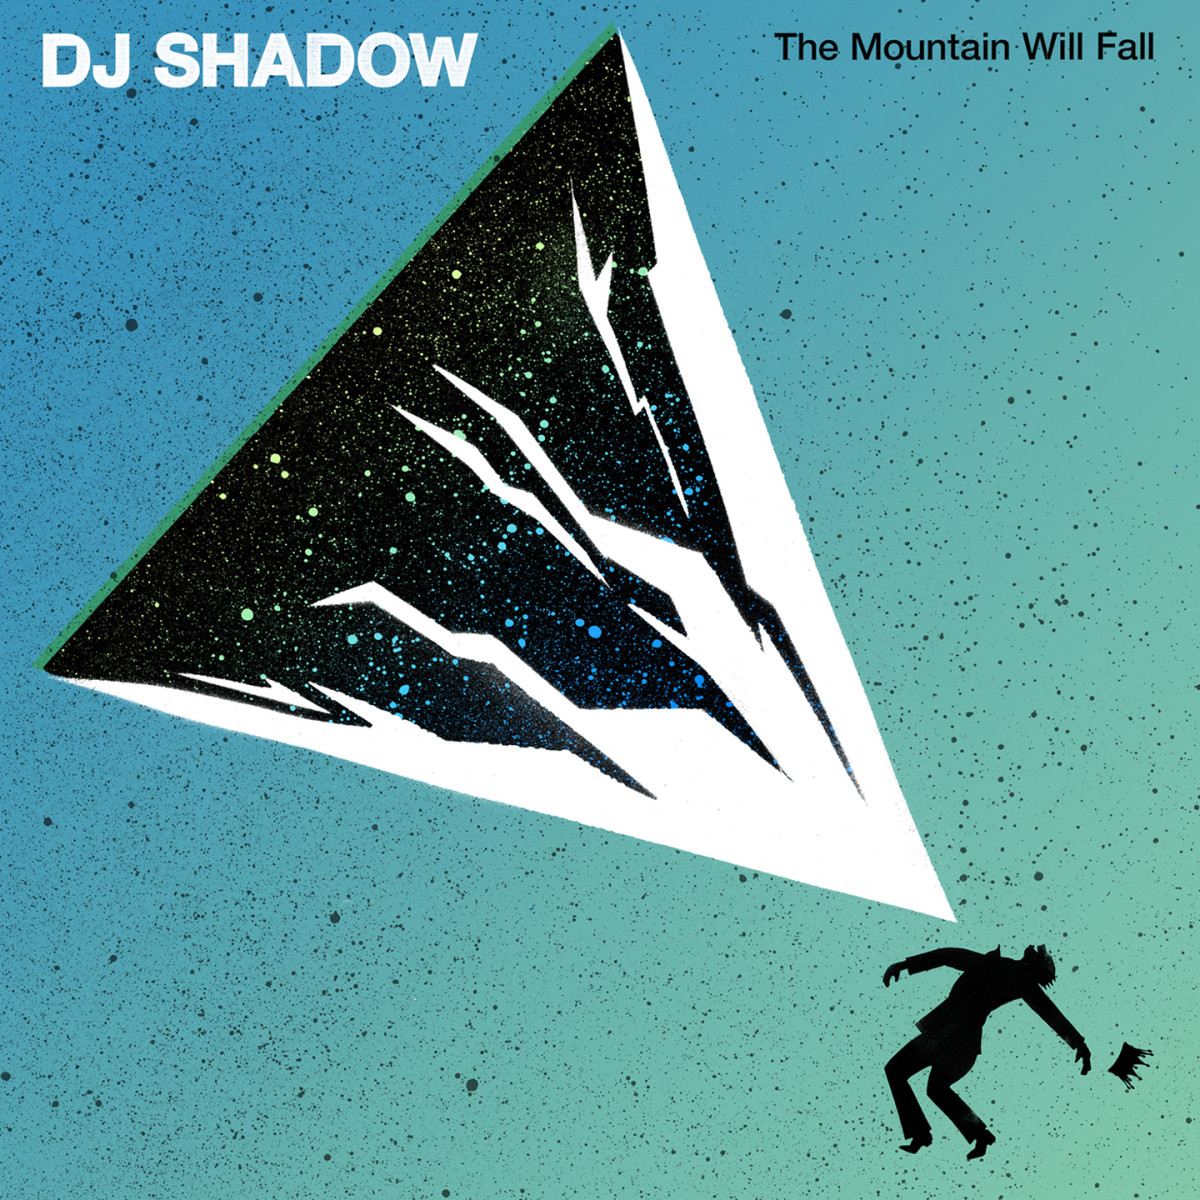 msap0034lp-dj-shadow.jpg